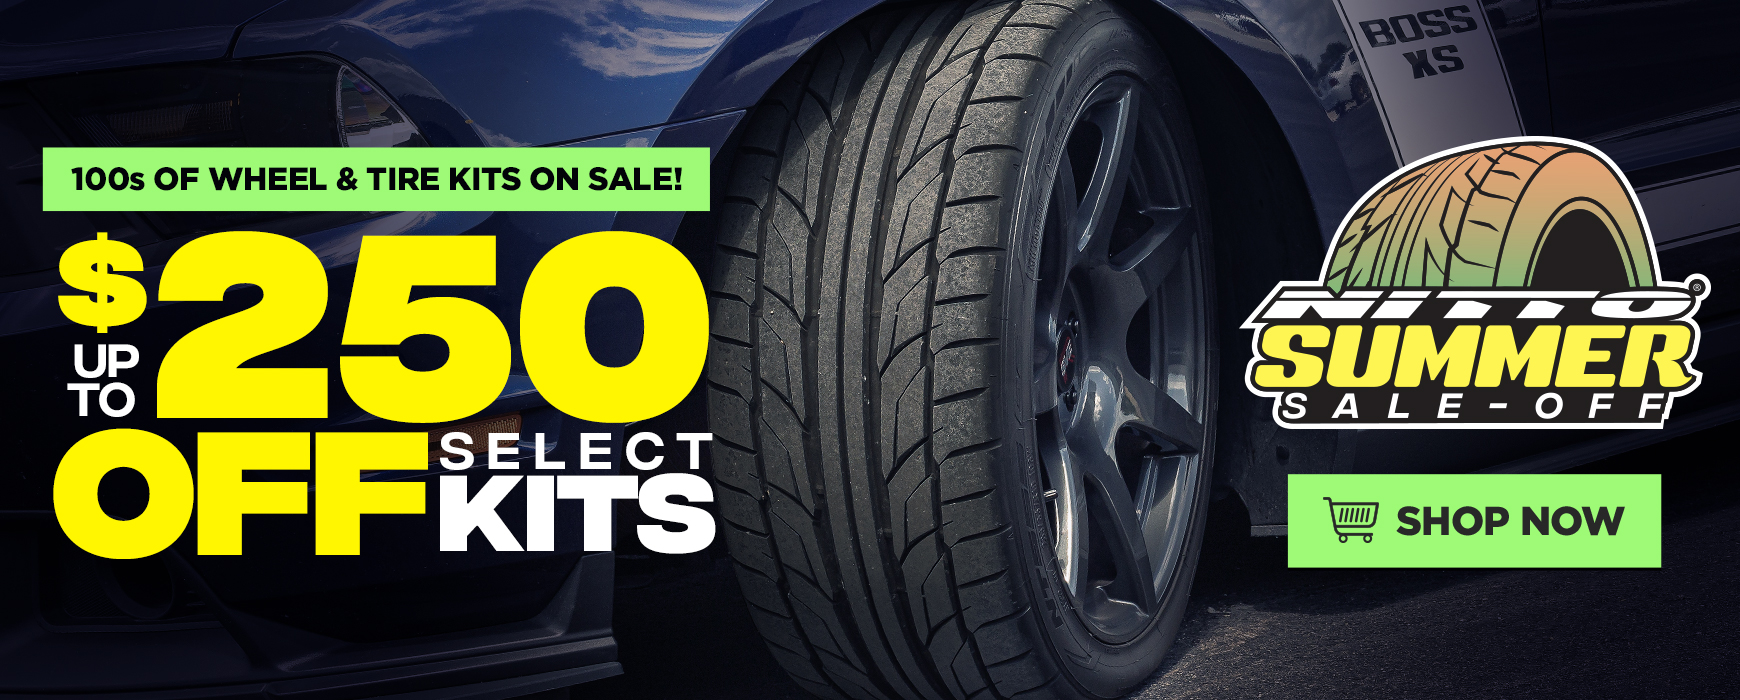 Nitto Summer SALE-OFF!